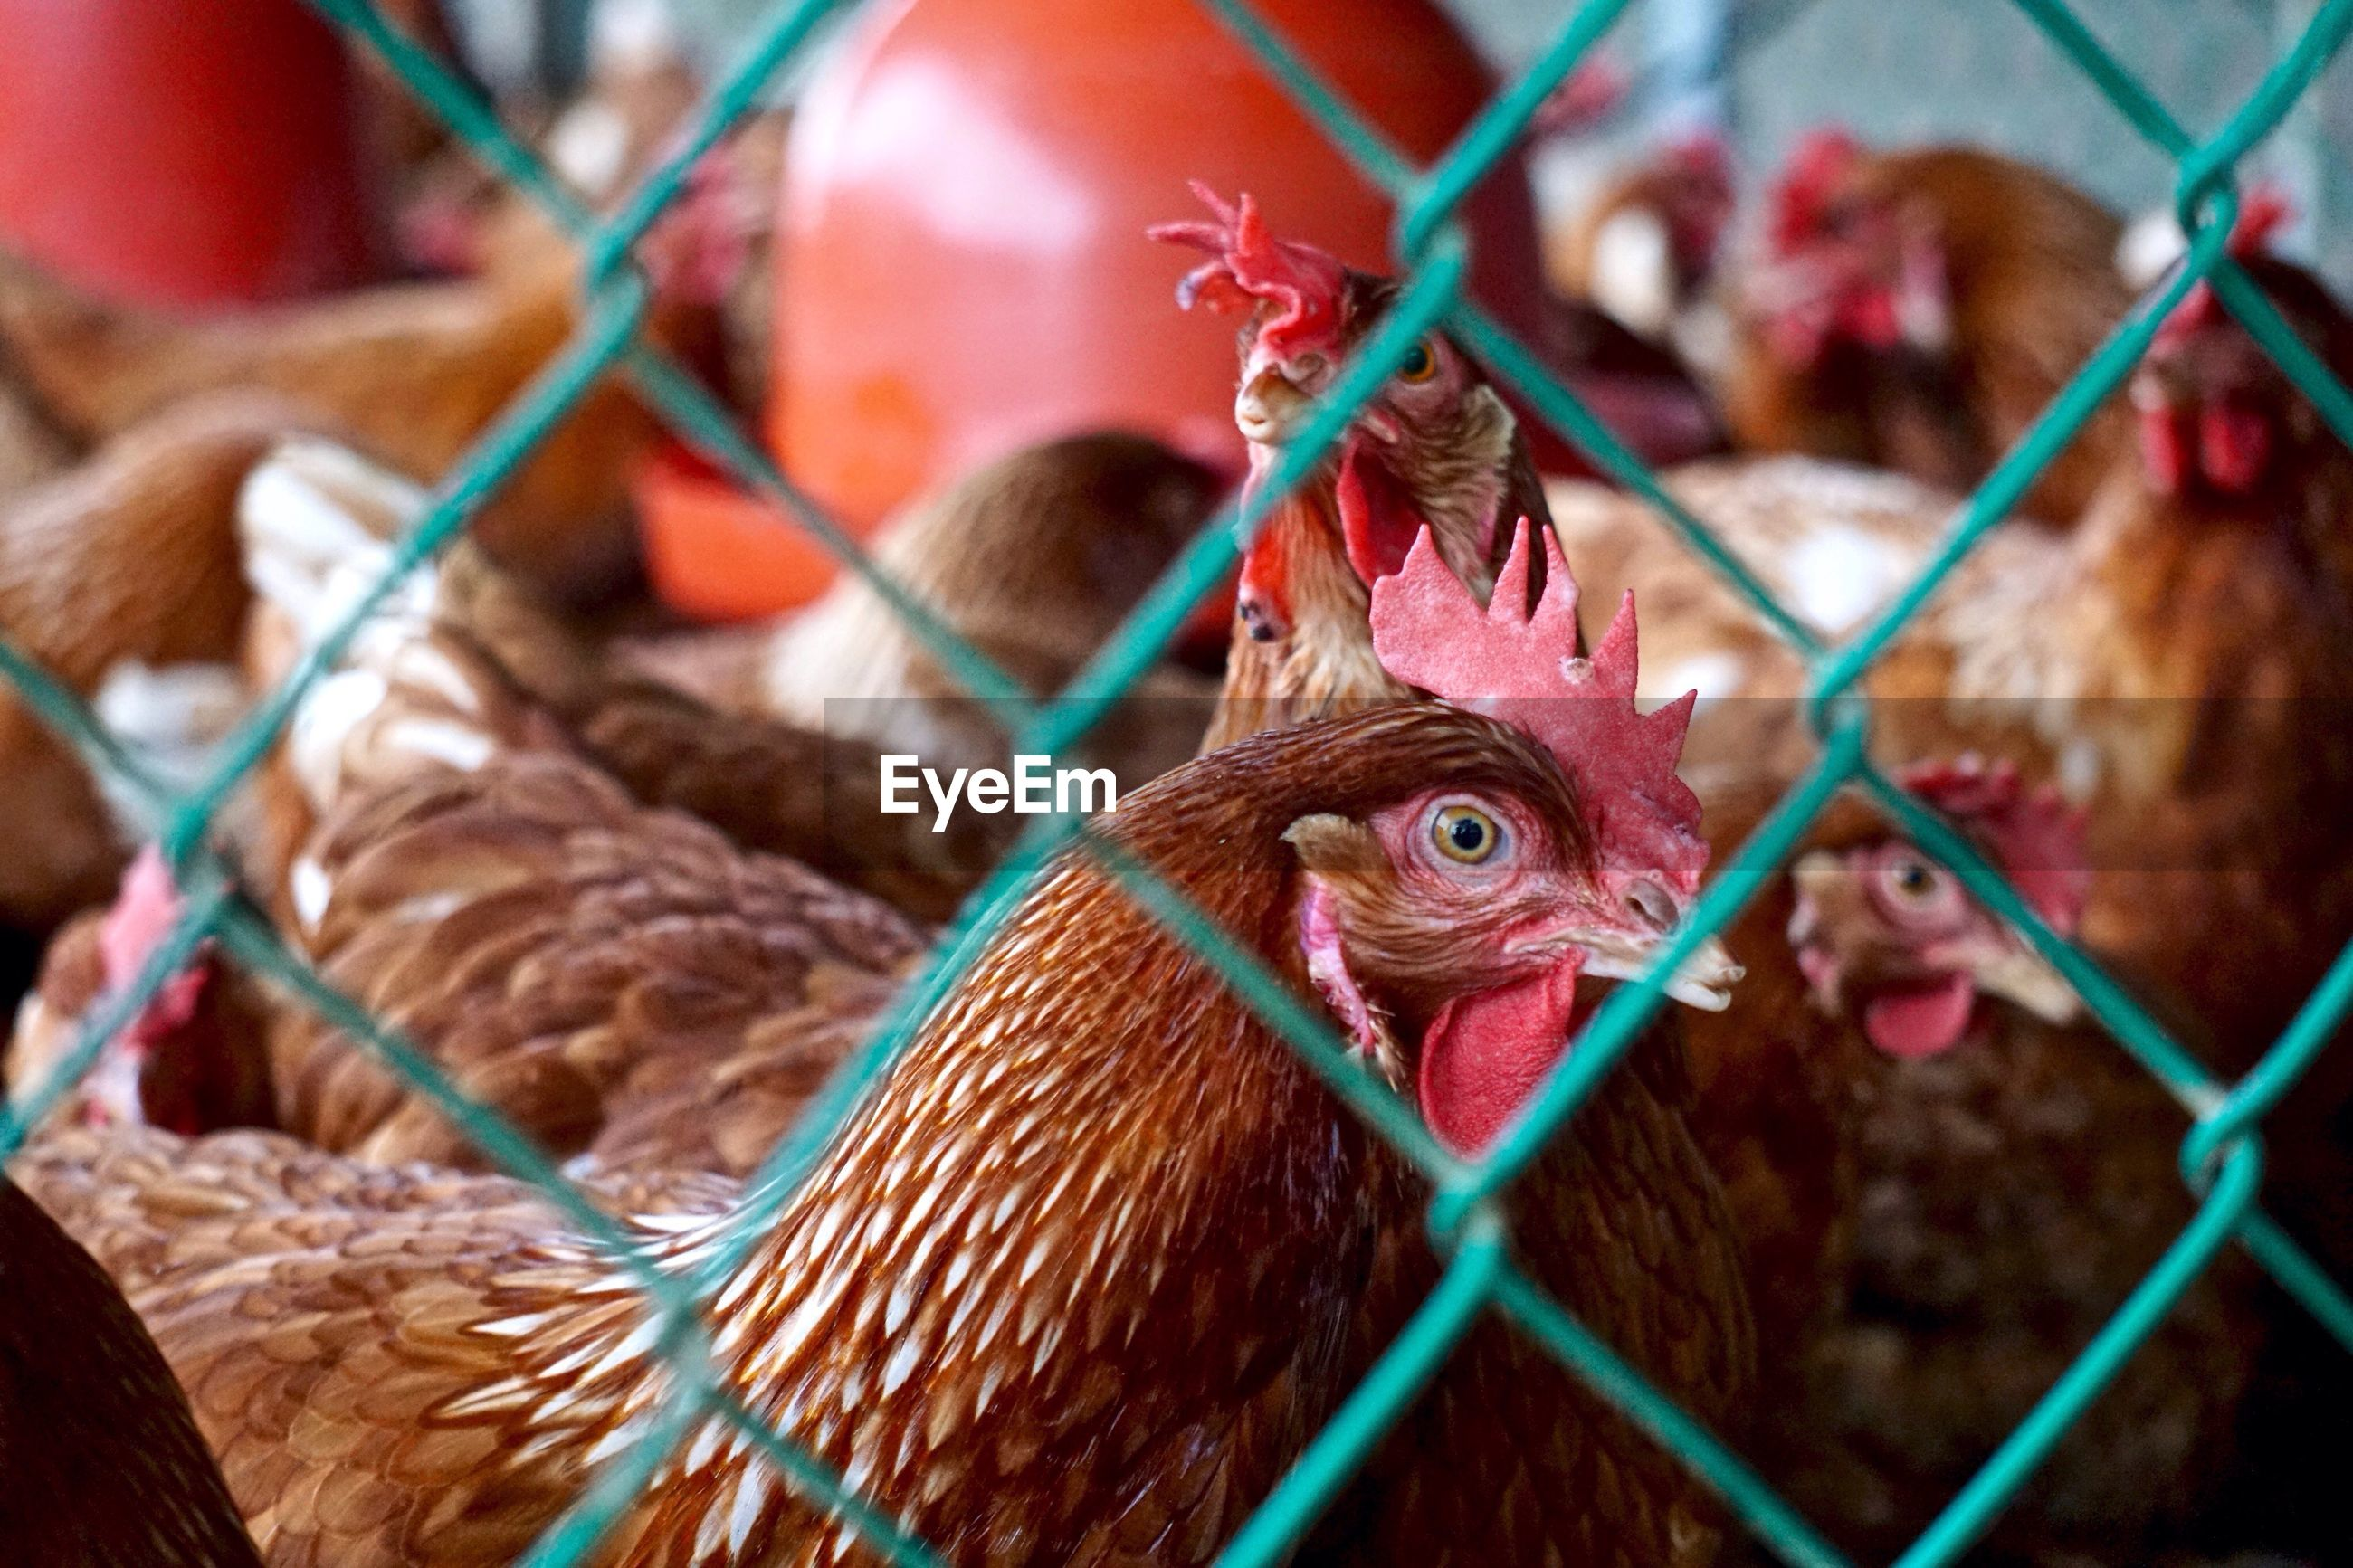 Chickens behind chainlink fence in poultry farm